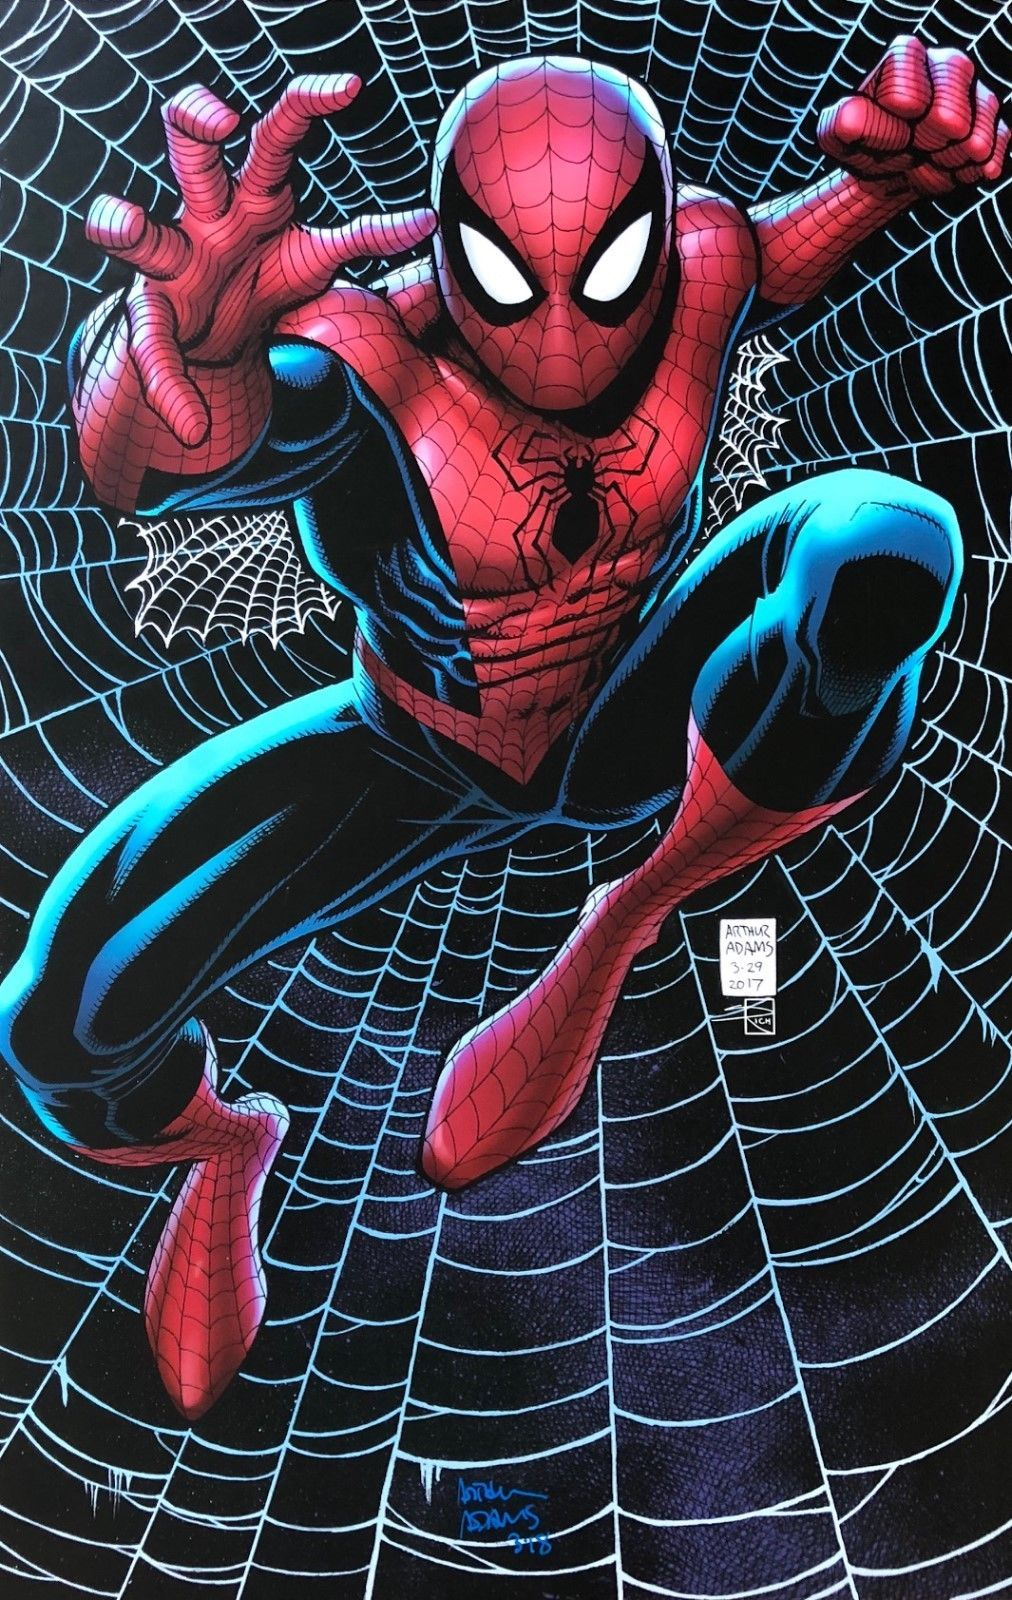 Arthur Adams Rare Spider Man Print Signed Limited Color 11x17 New